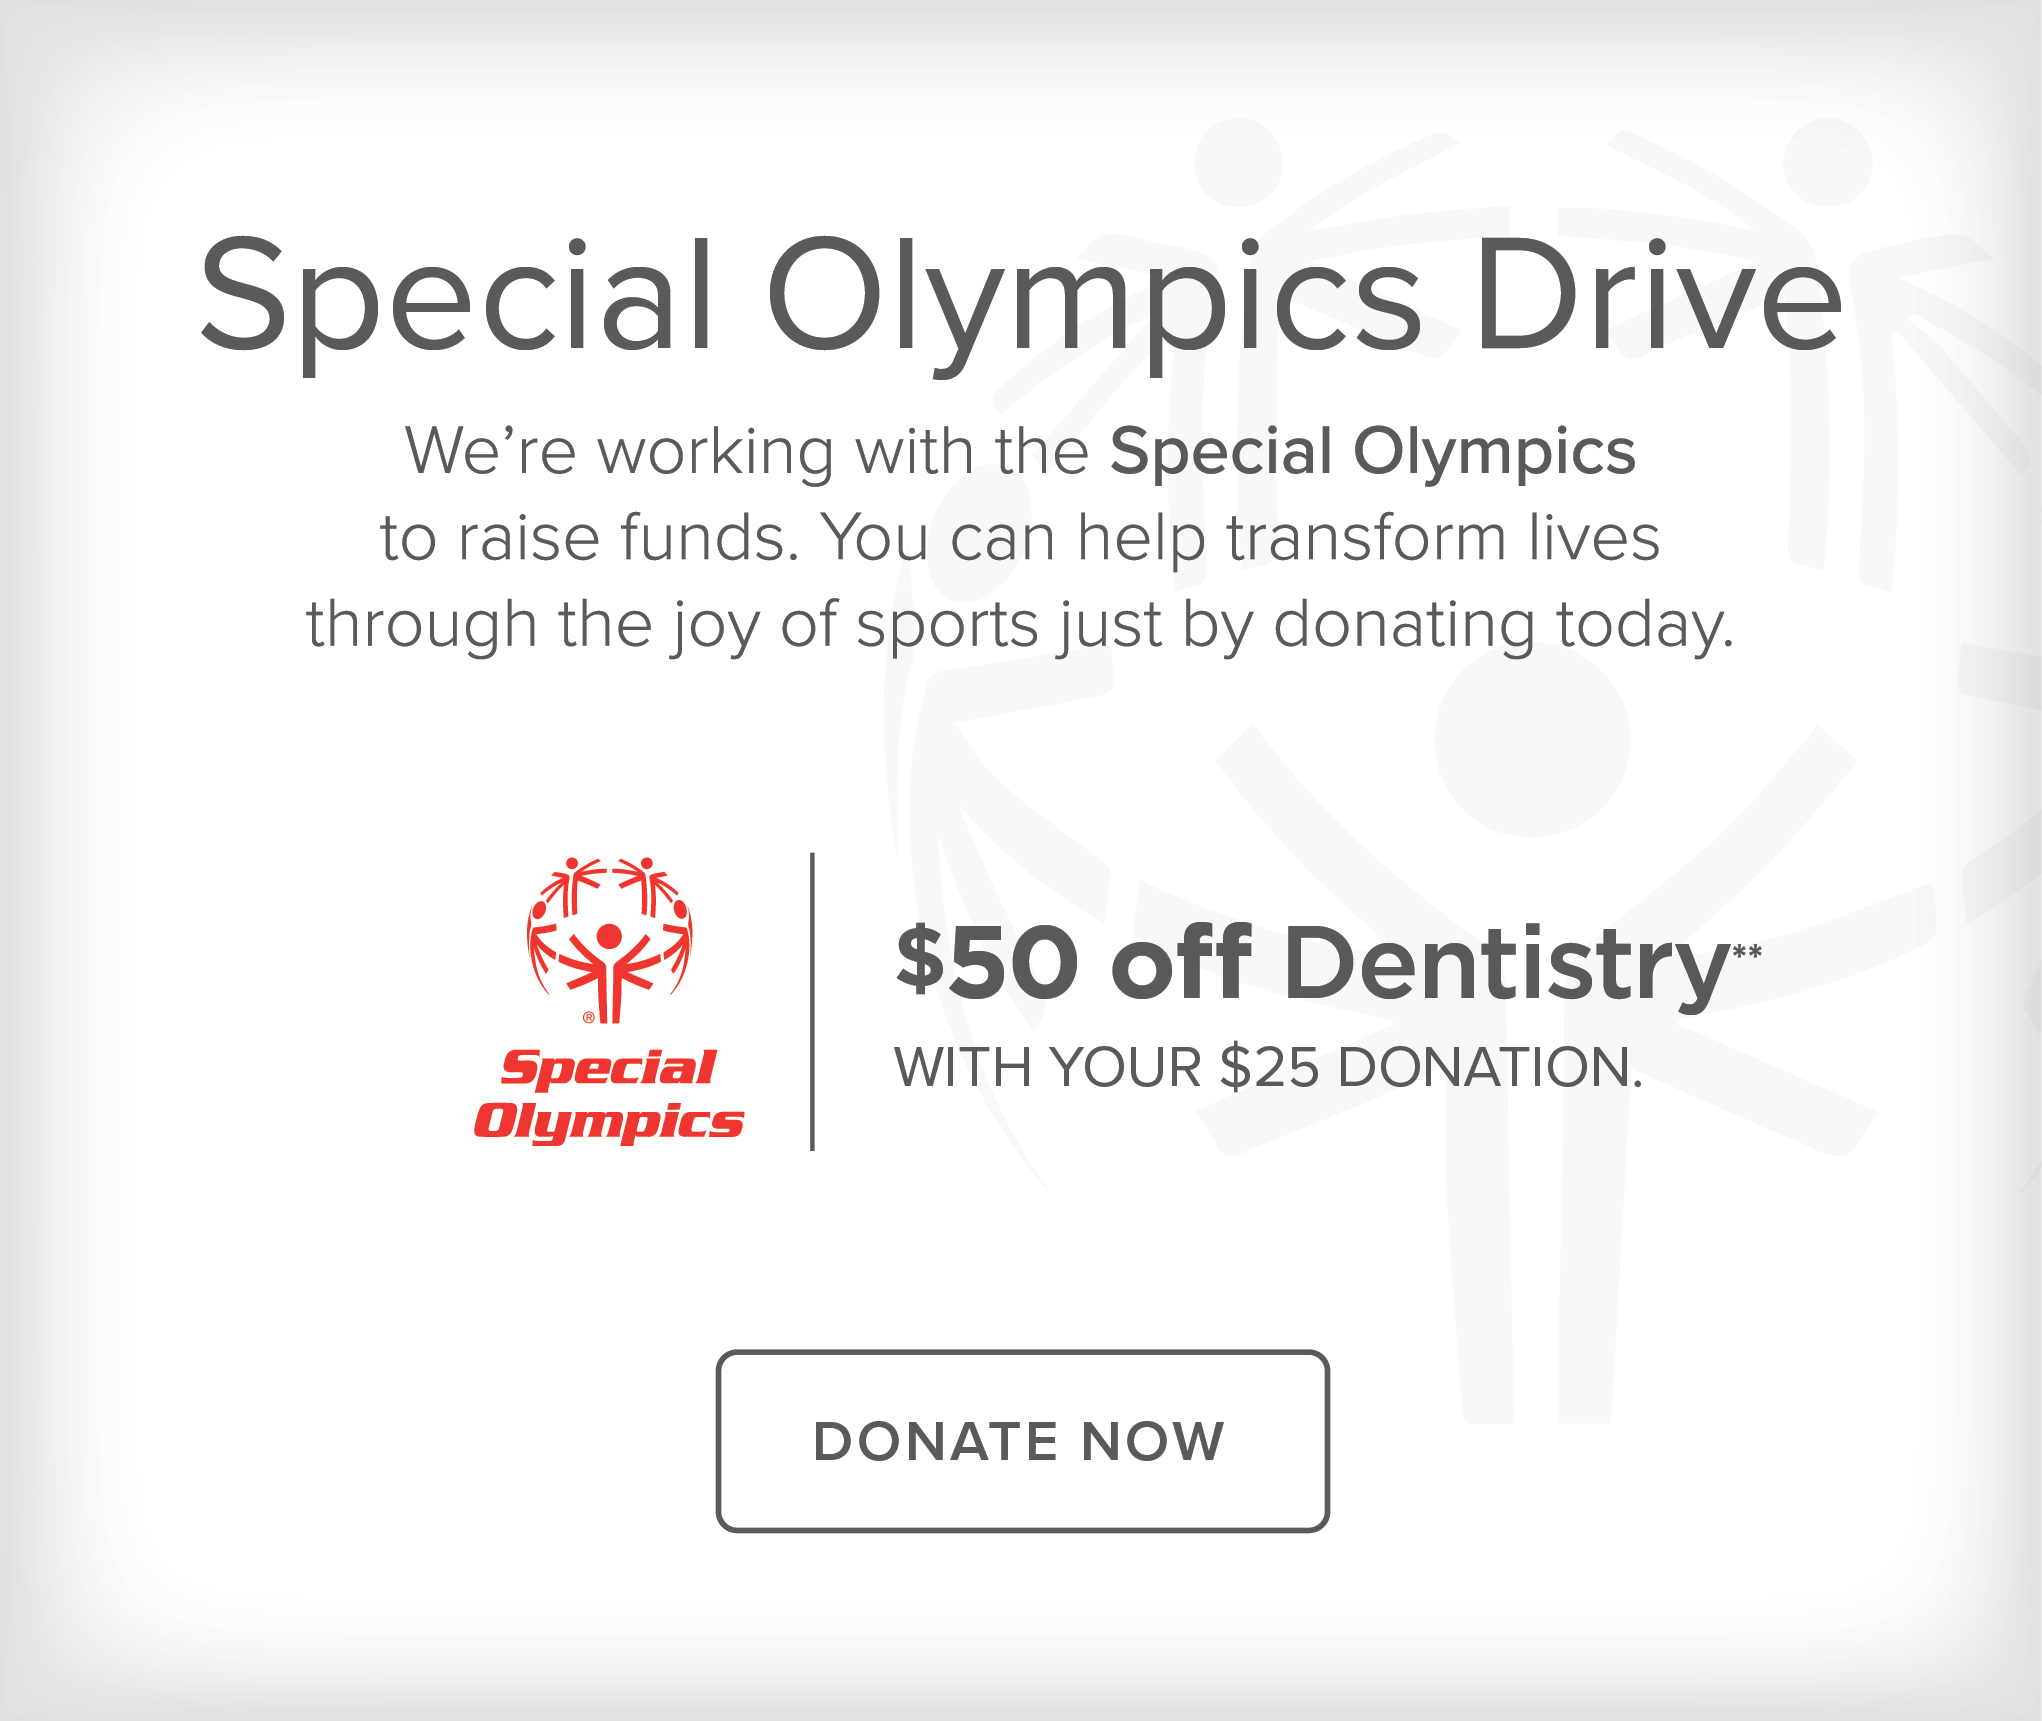 Special Olympics Drive - Aurora Village Dental Group